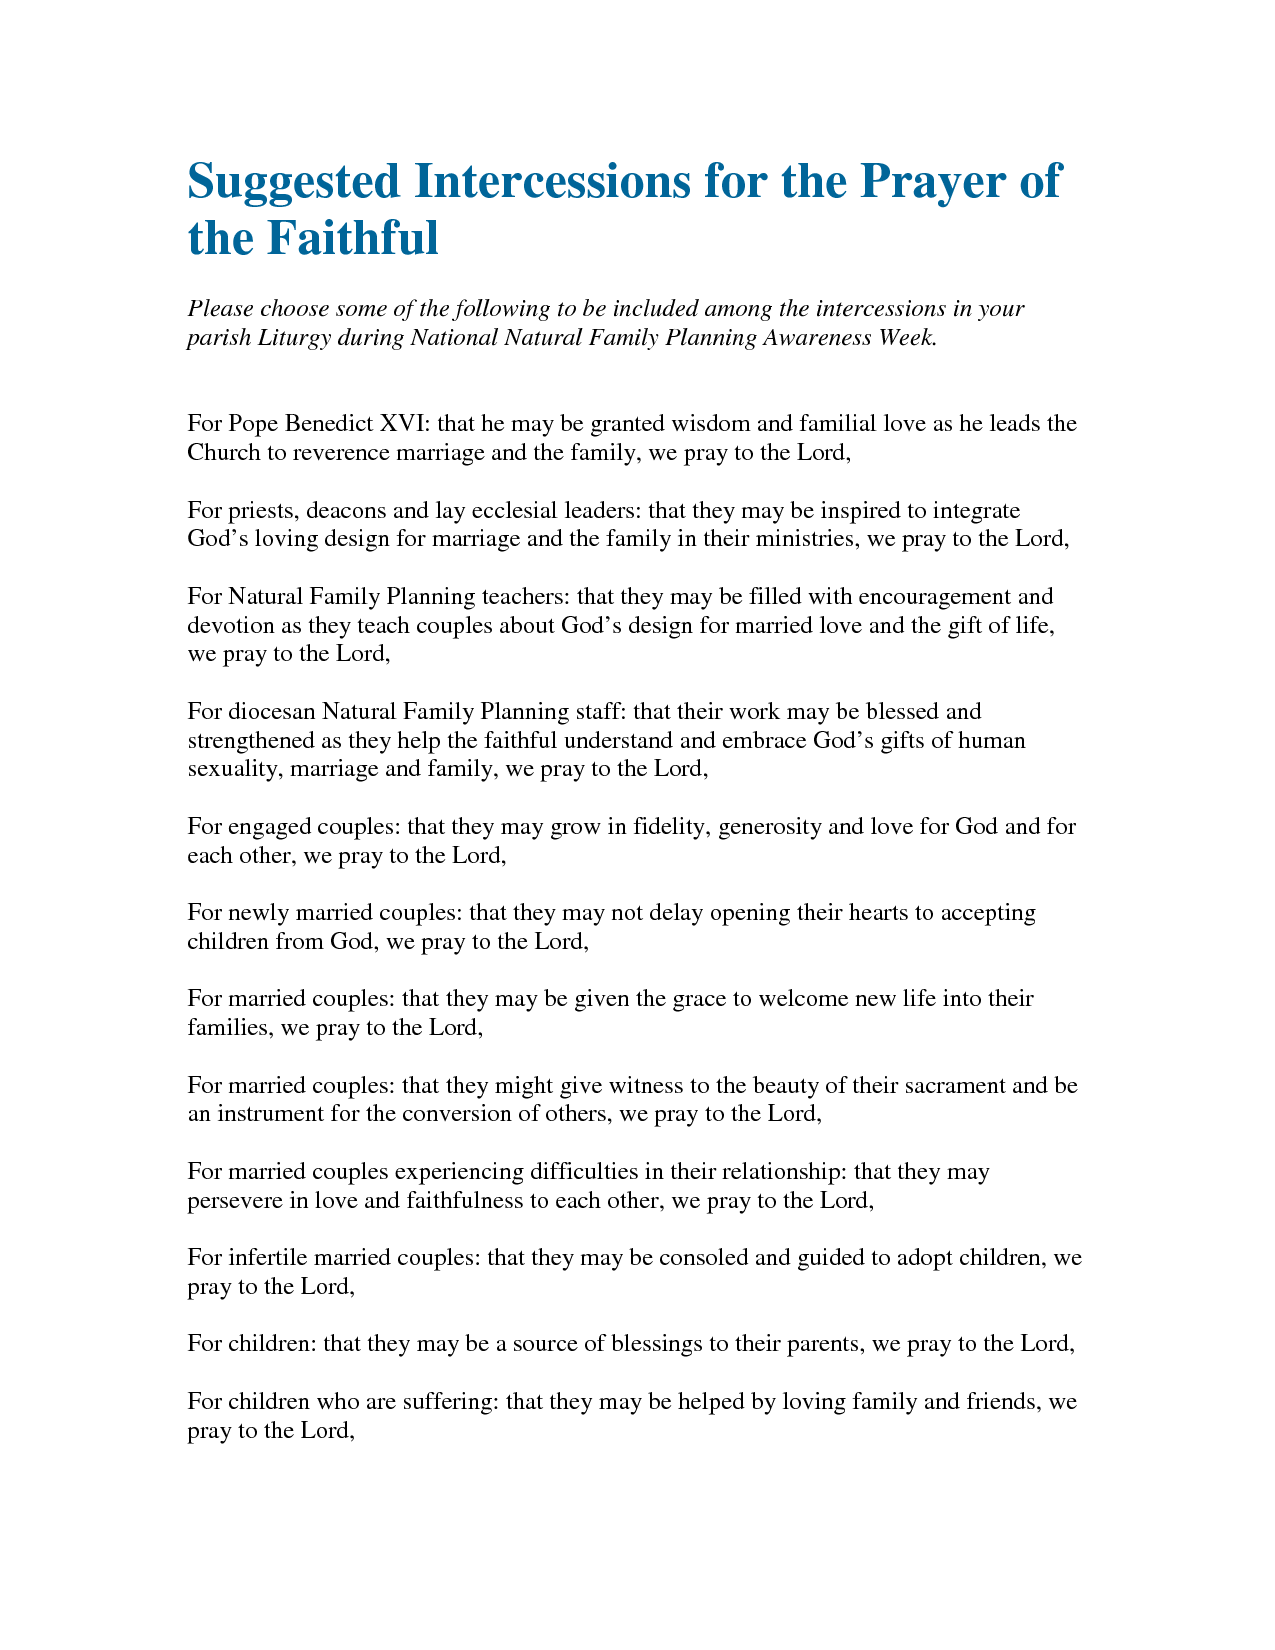 Intercessory prayer example and prayer points in the bible.